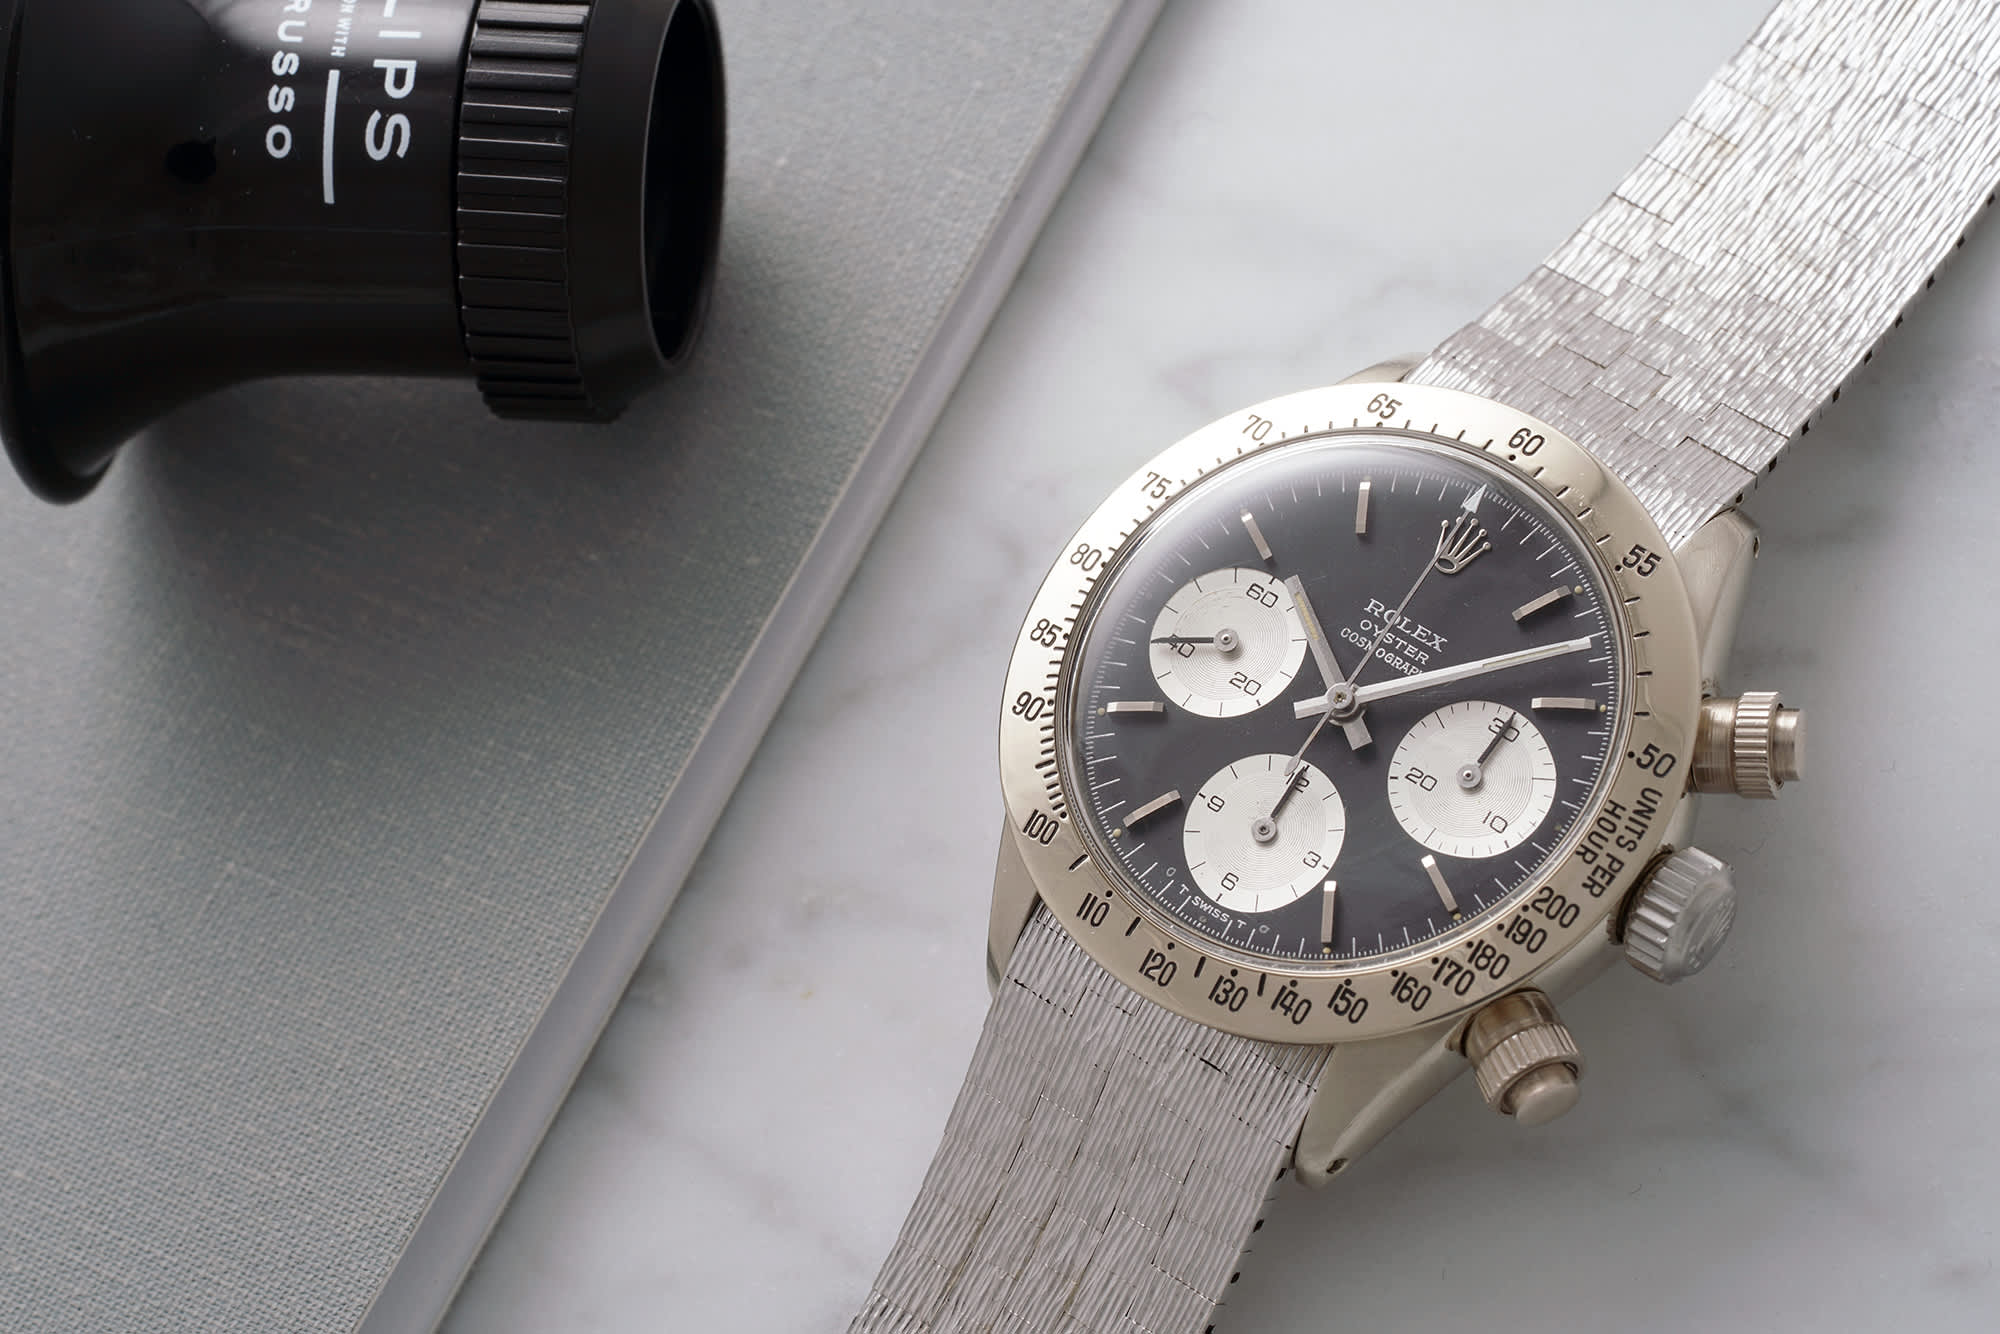 Rolexs Watches The Unicorn May Be One Of The Most Expensive Rolexes In The World